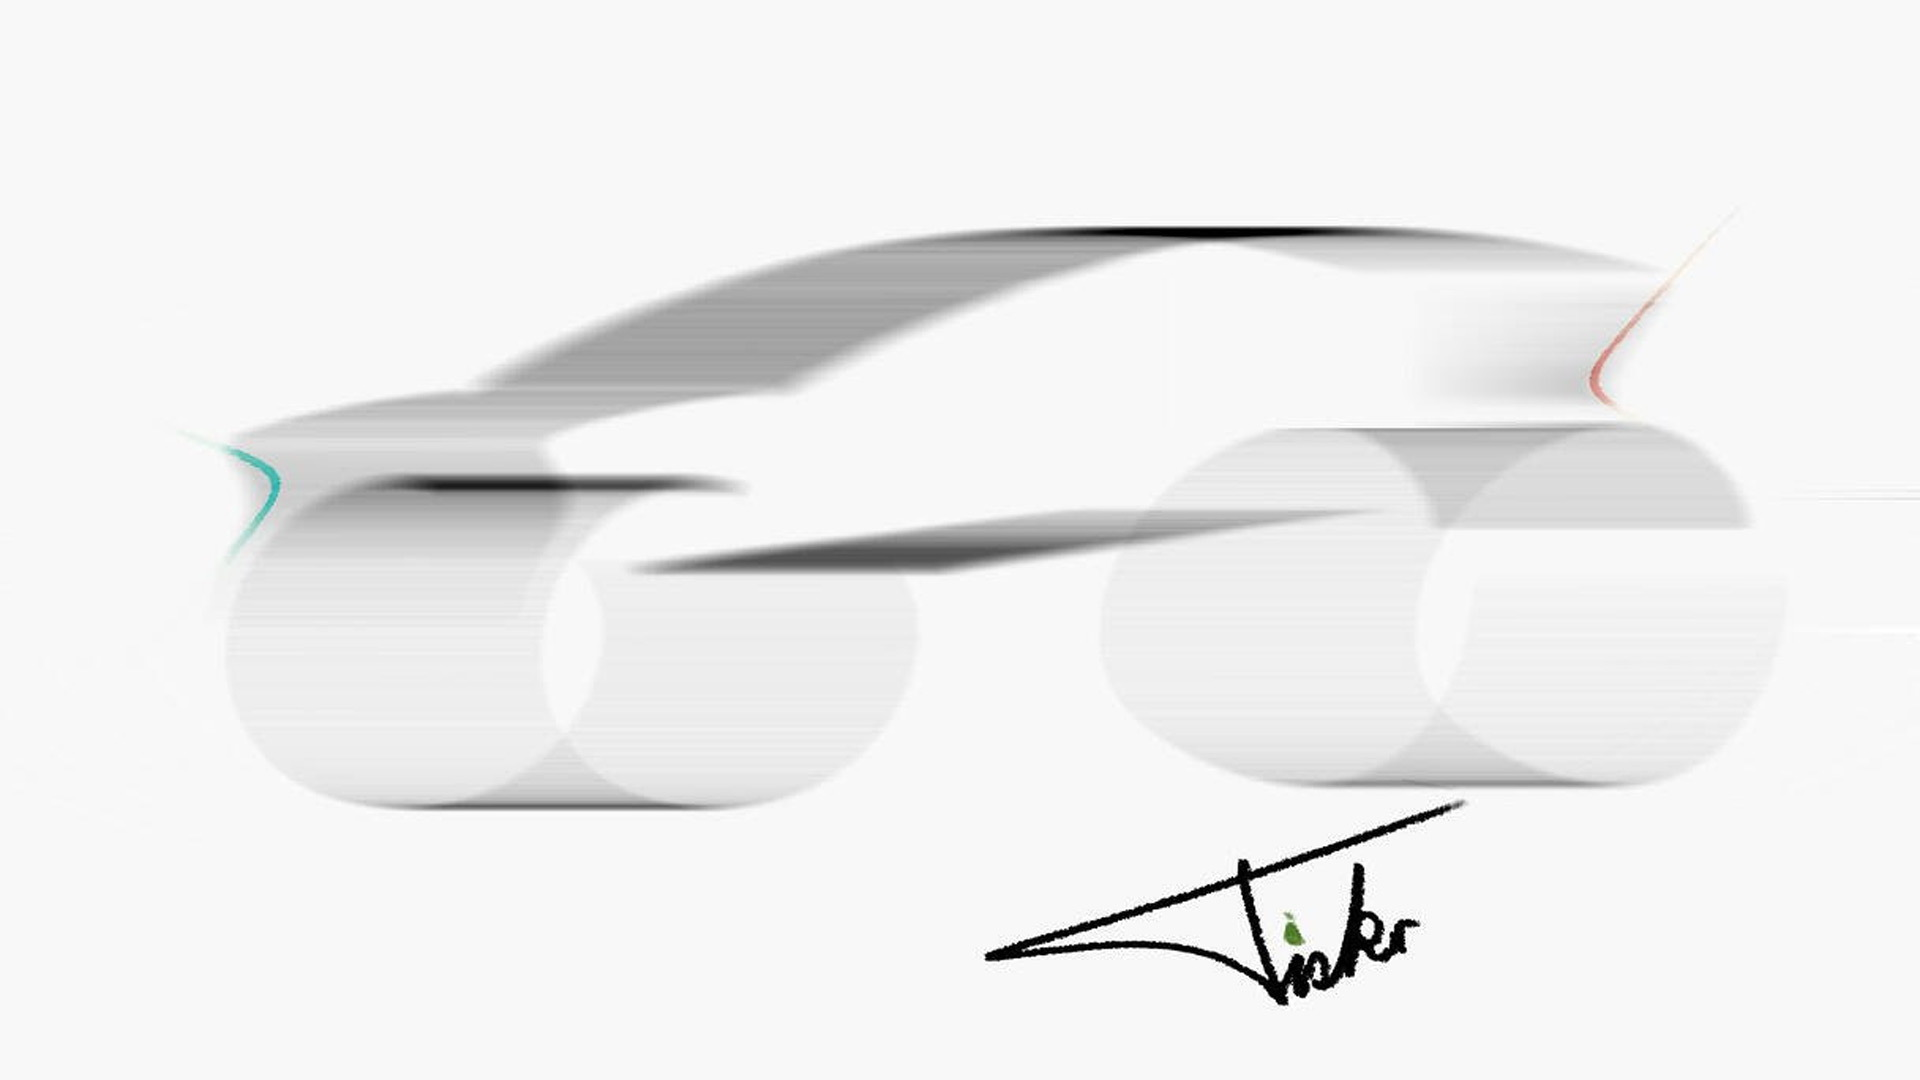 Teaser sketch for Fisker electric vehicle being developed with Foxconn